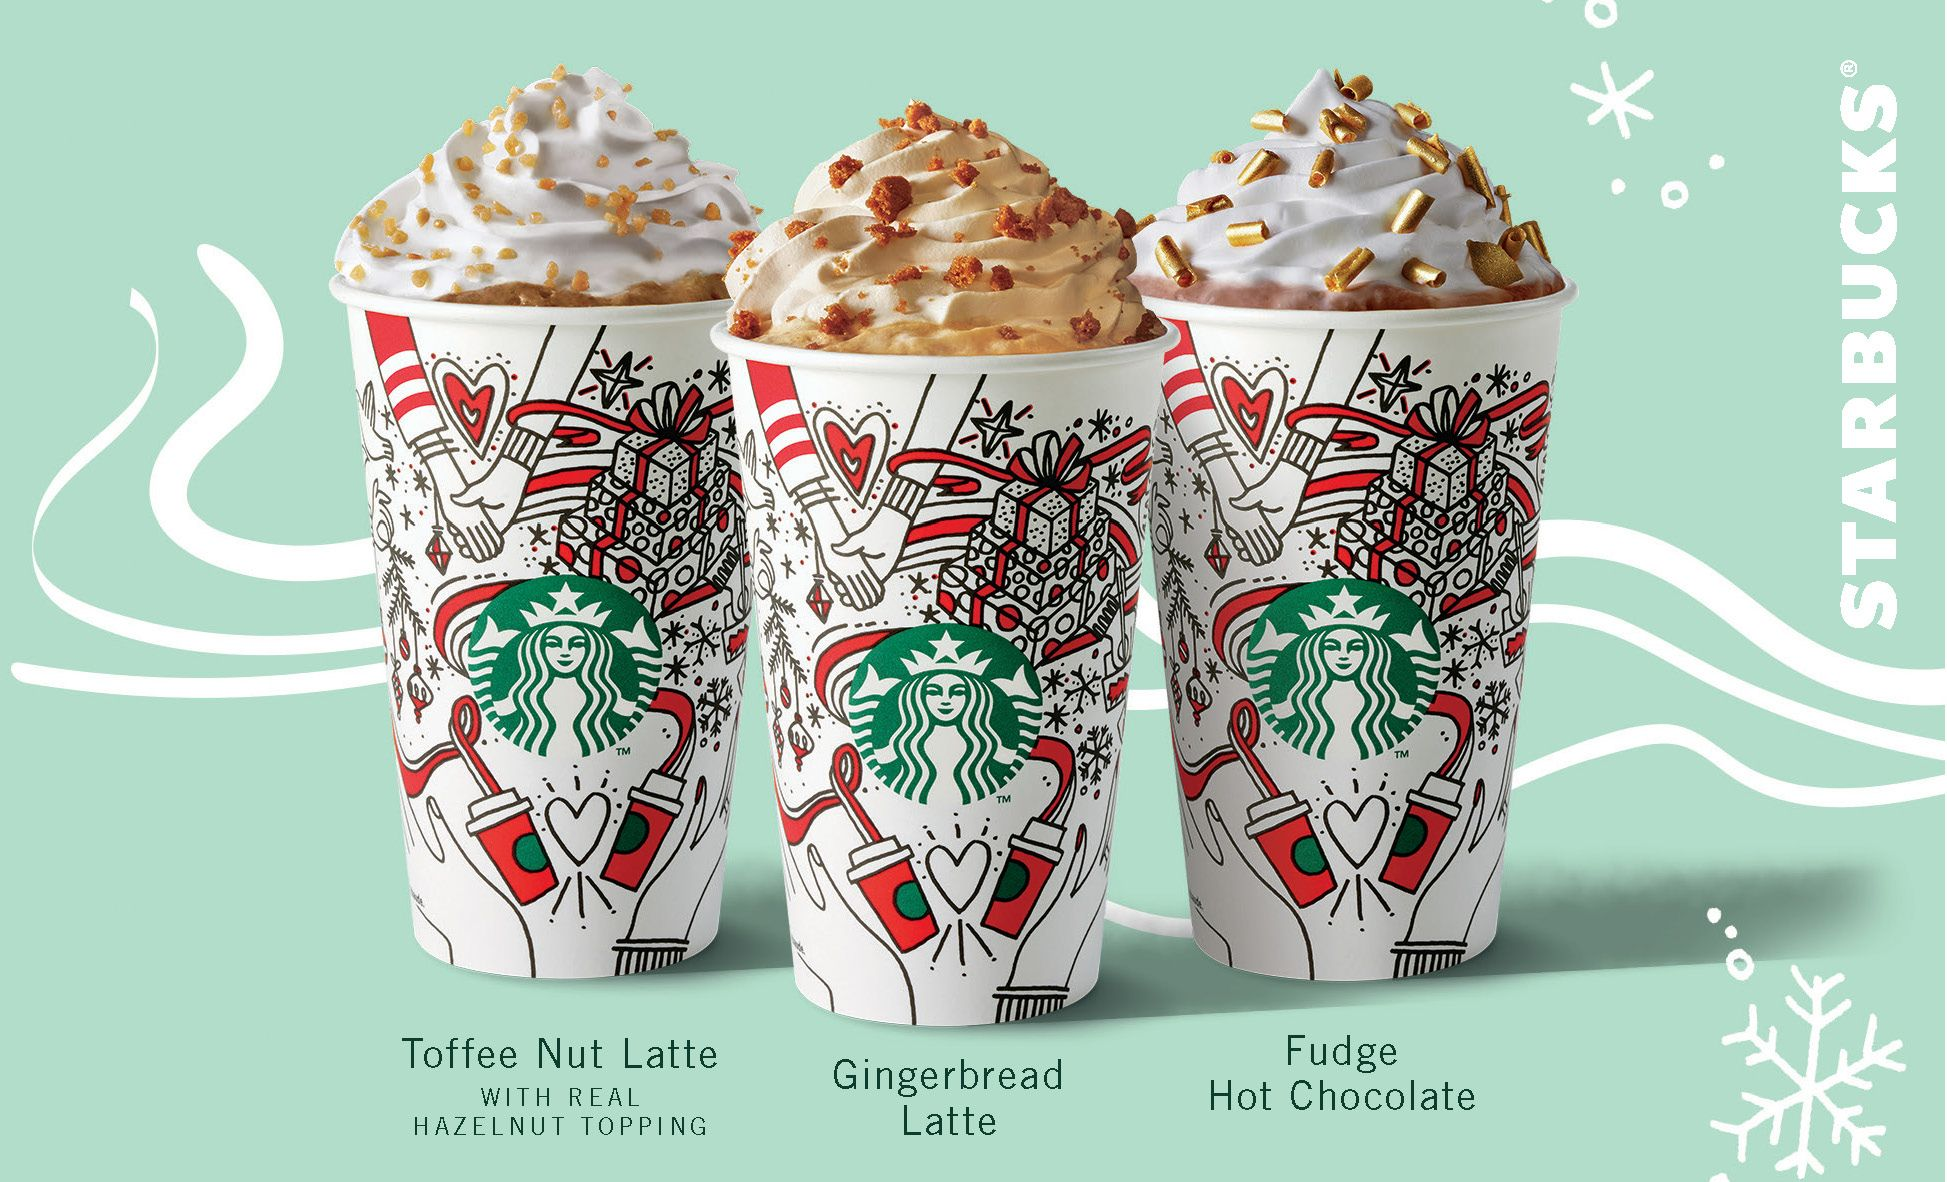 starbucks 2017 christmas menu is here and theres a brand new festive drink